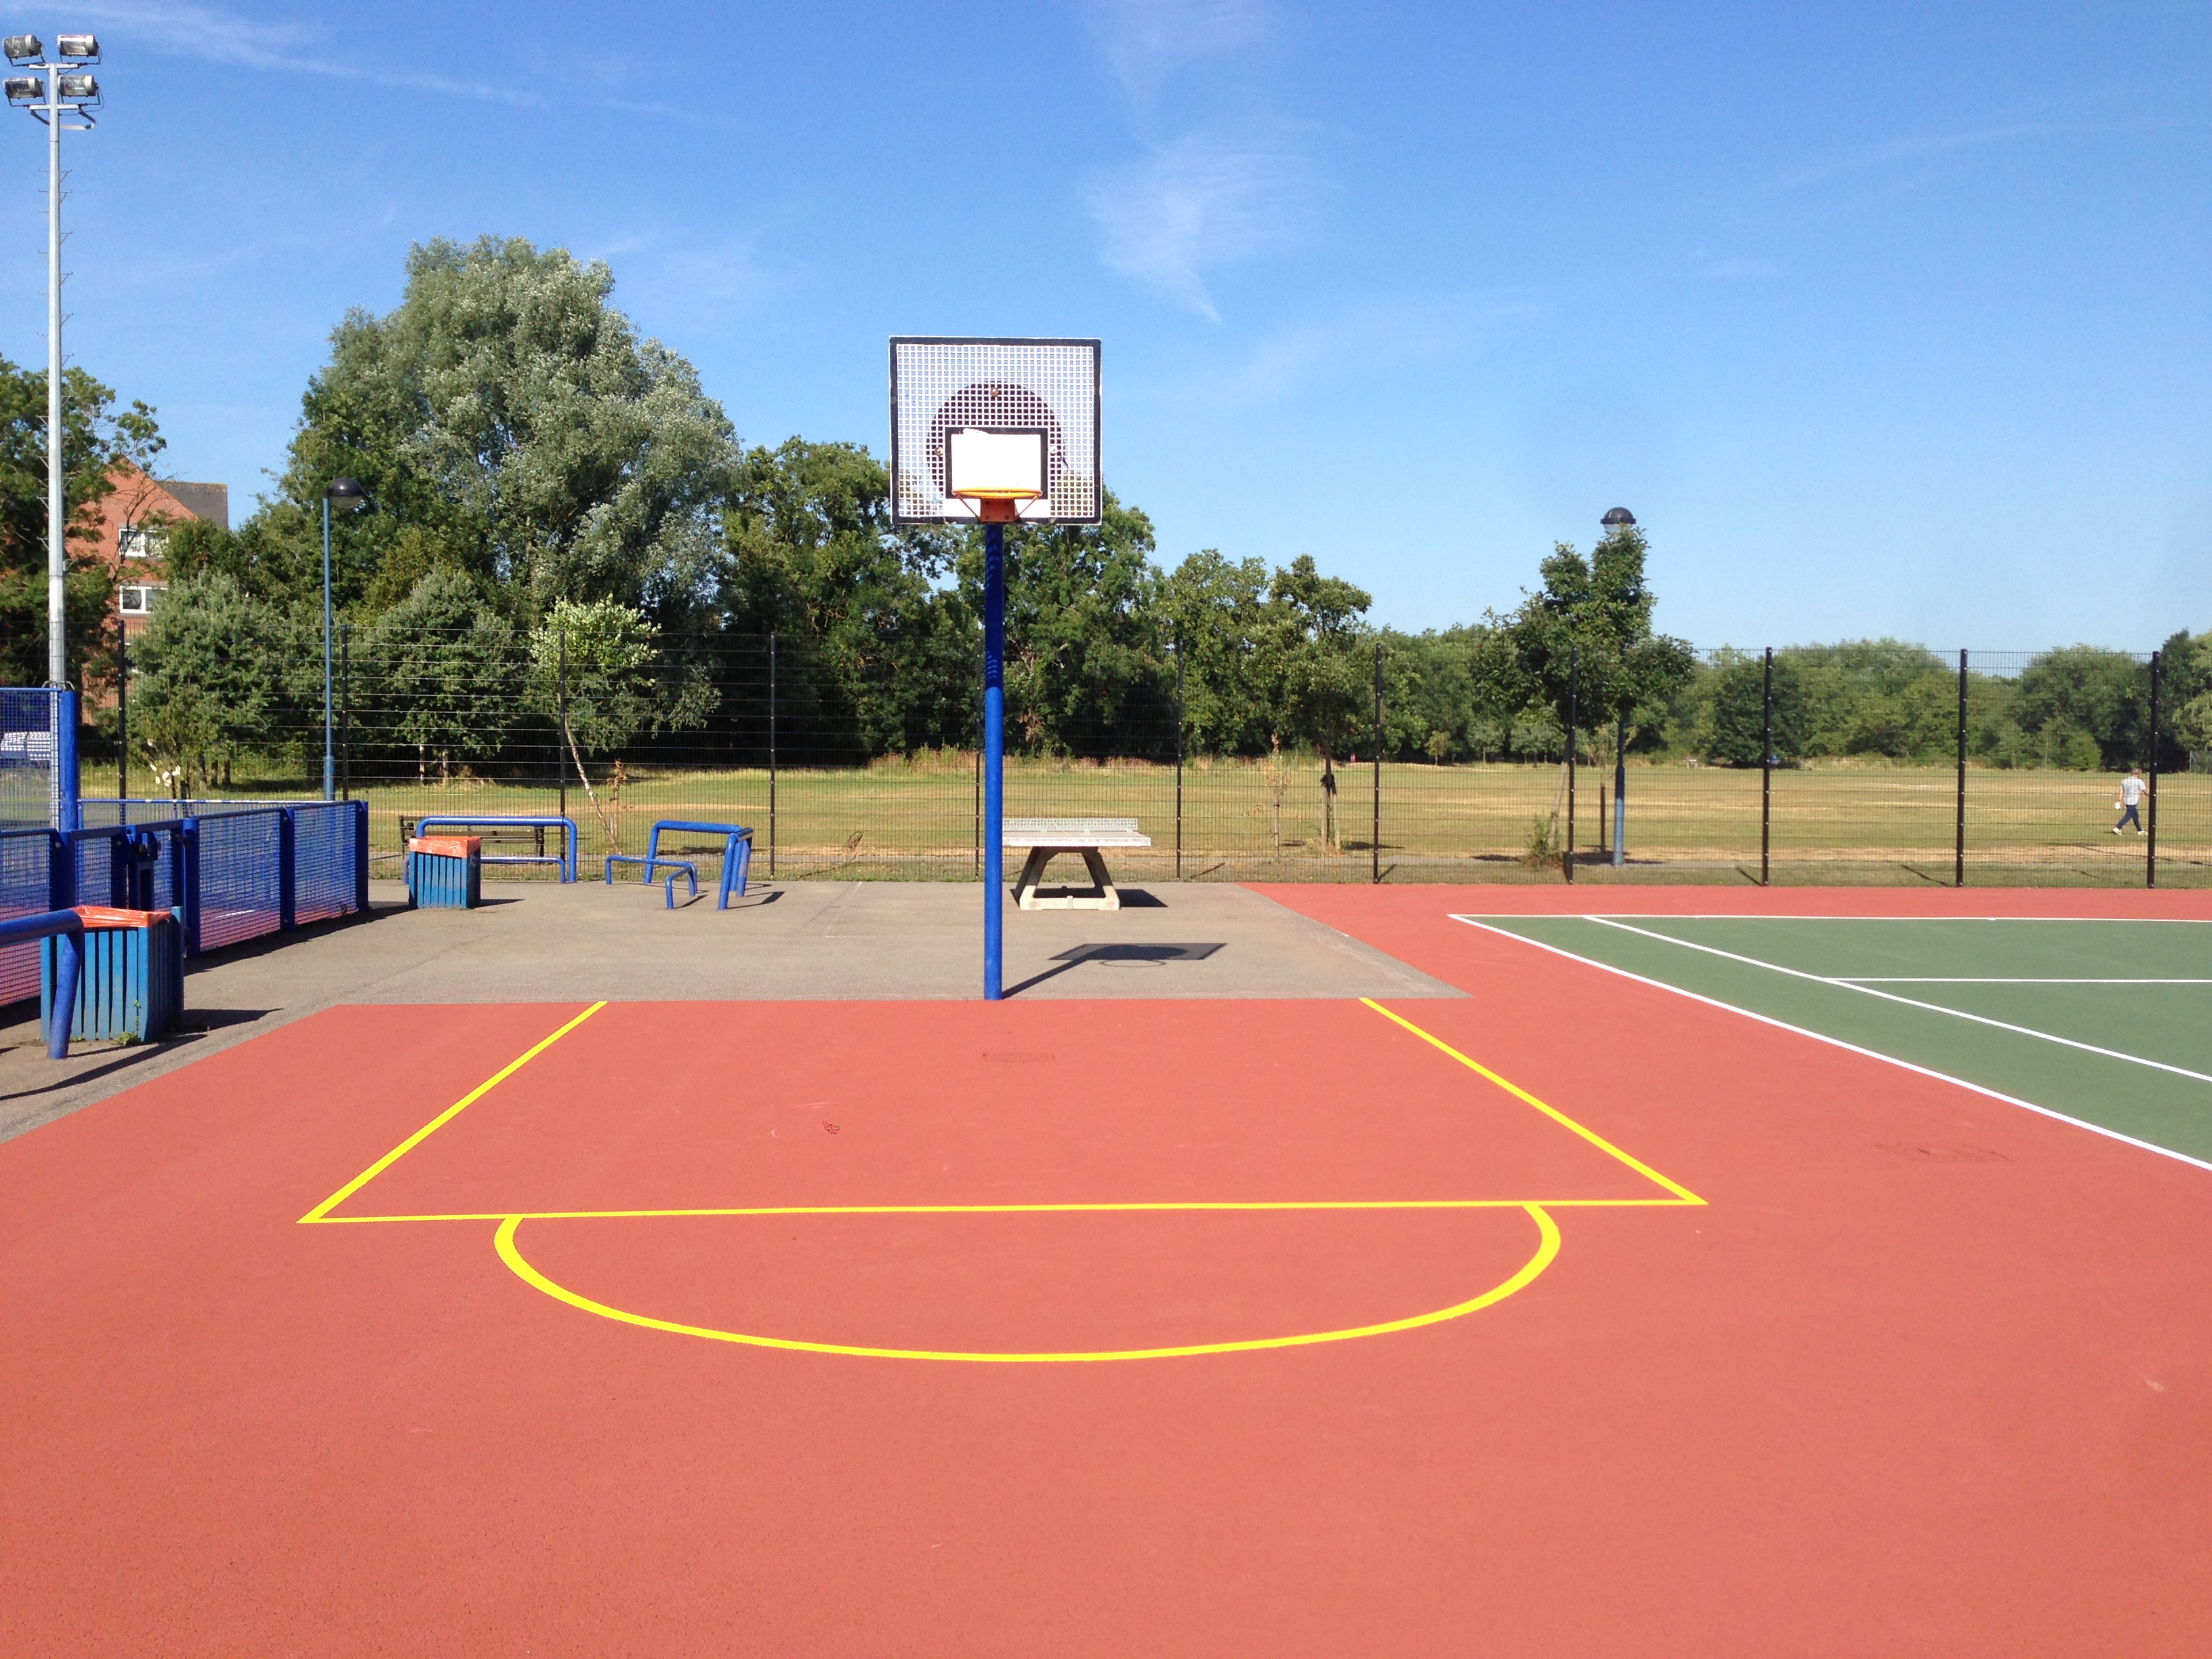 Macadam surfacing specification tarmac court designs for Sports courts cost